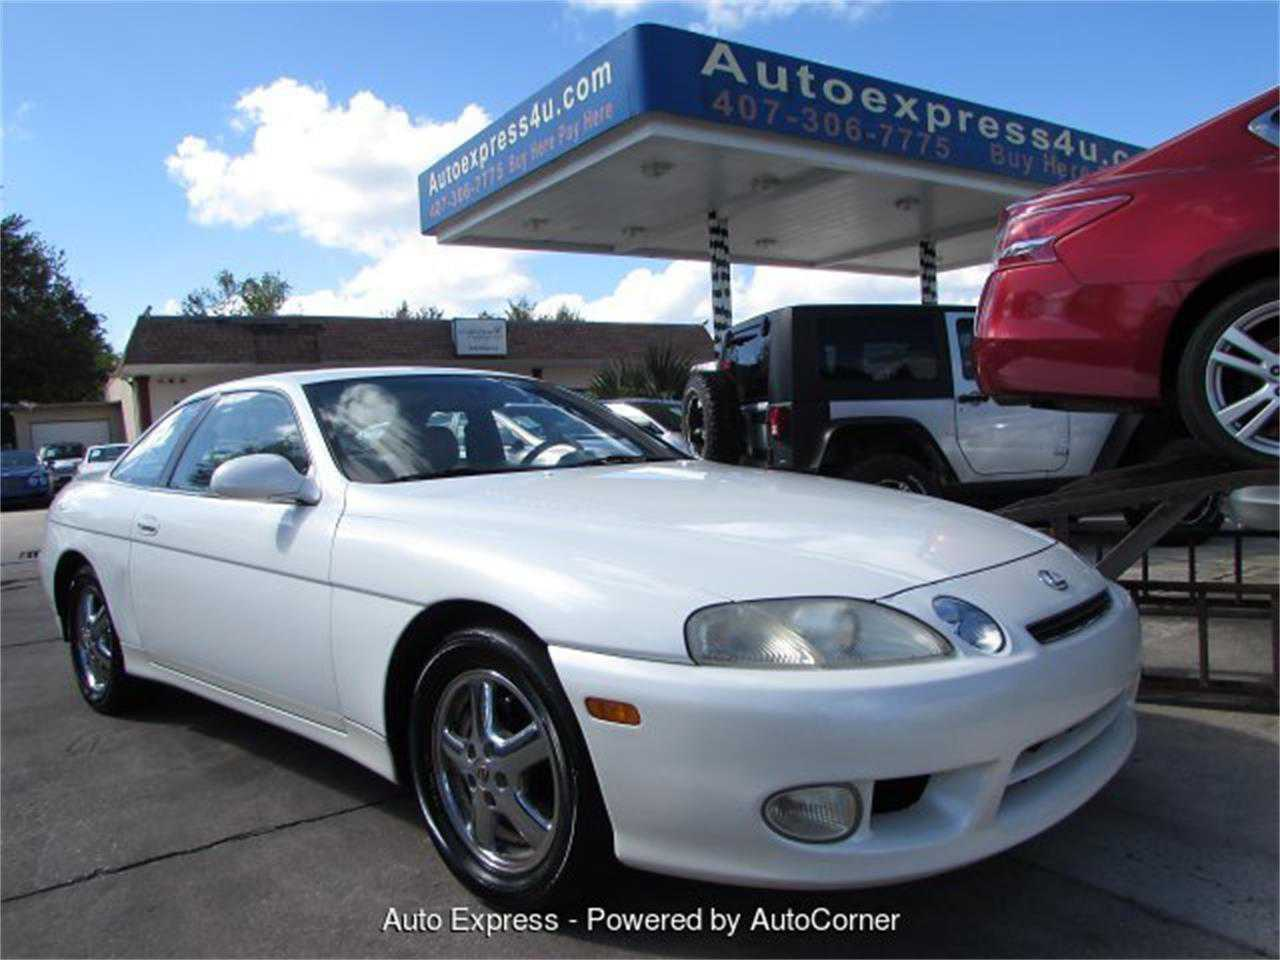 Lexus Sc300 For Sale In Costa Mesa Ca 1992 Teal 2dr Coupe 1997 Sc400